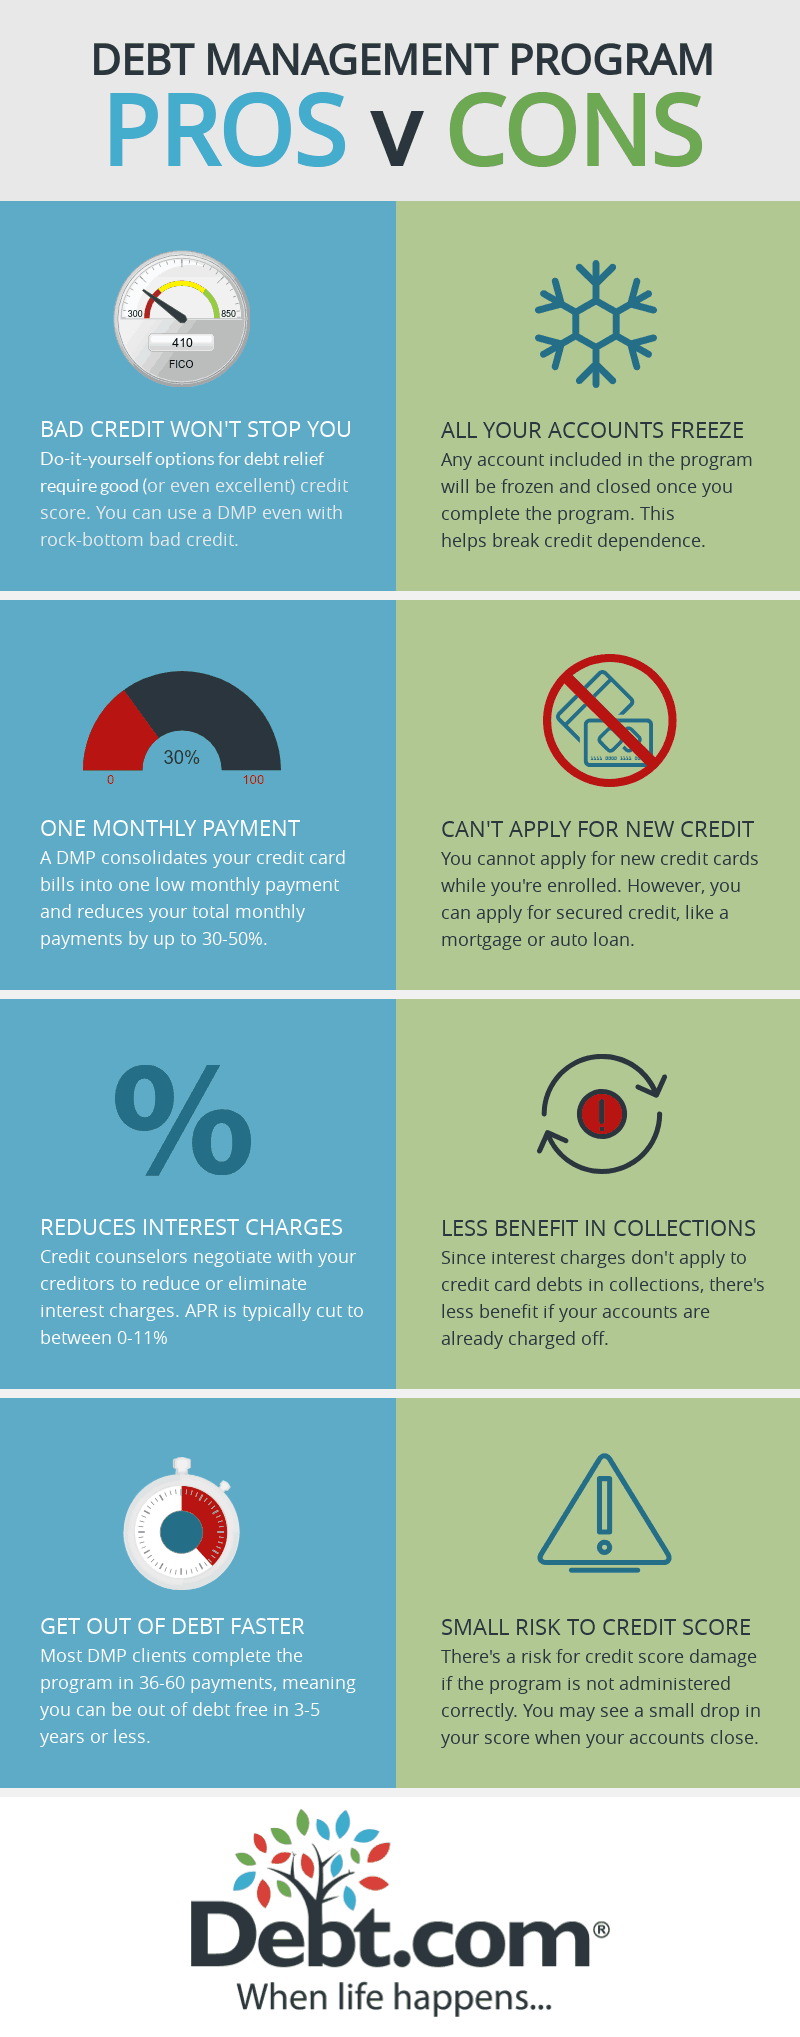 This infographic weighs debt management program pros and cons so you can make an informed decision about your debt